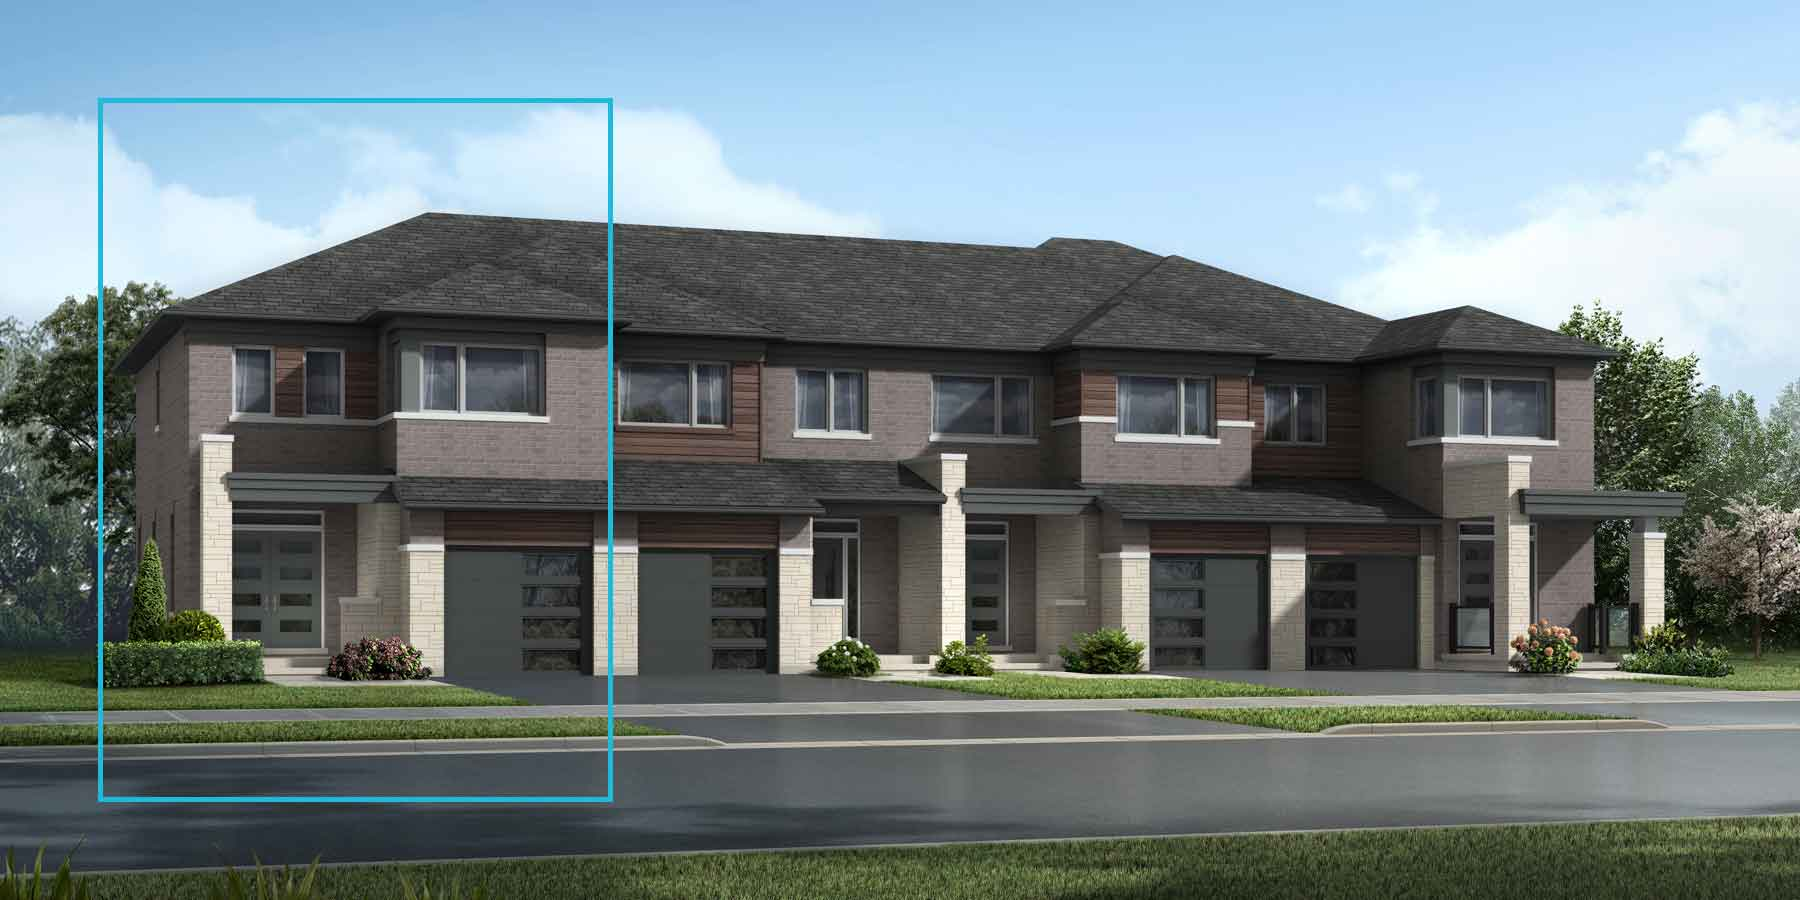 The Millbank End Plan elevationtransitional_southestates_millbankend at Wildflower Crossing in Kitchener Ontario by Mattamy Homes